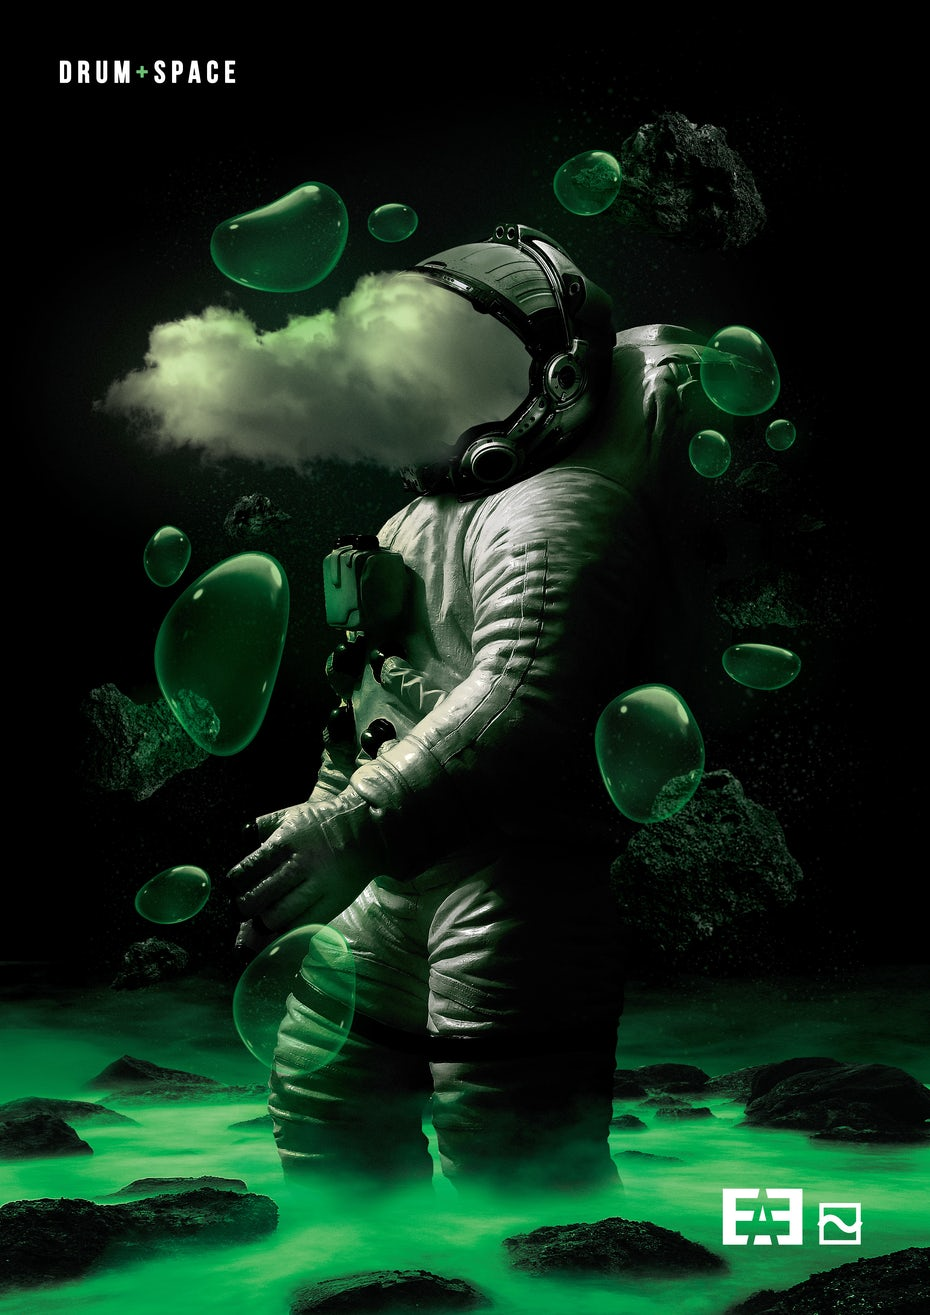 Graphic design trends 2020 example: Poster design showing an astronaut full of smoke